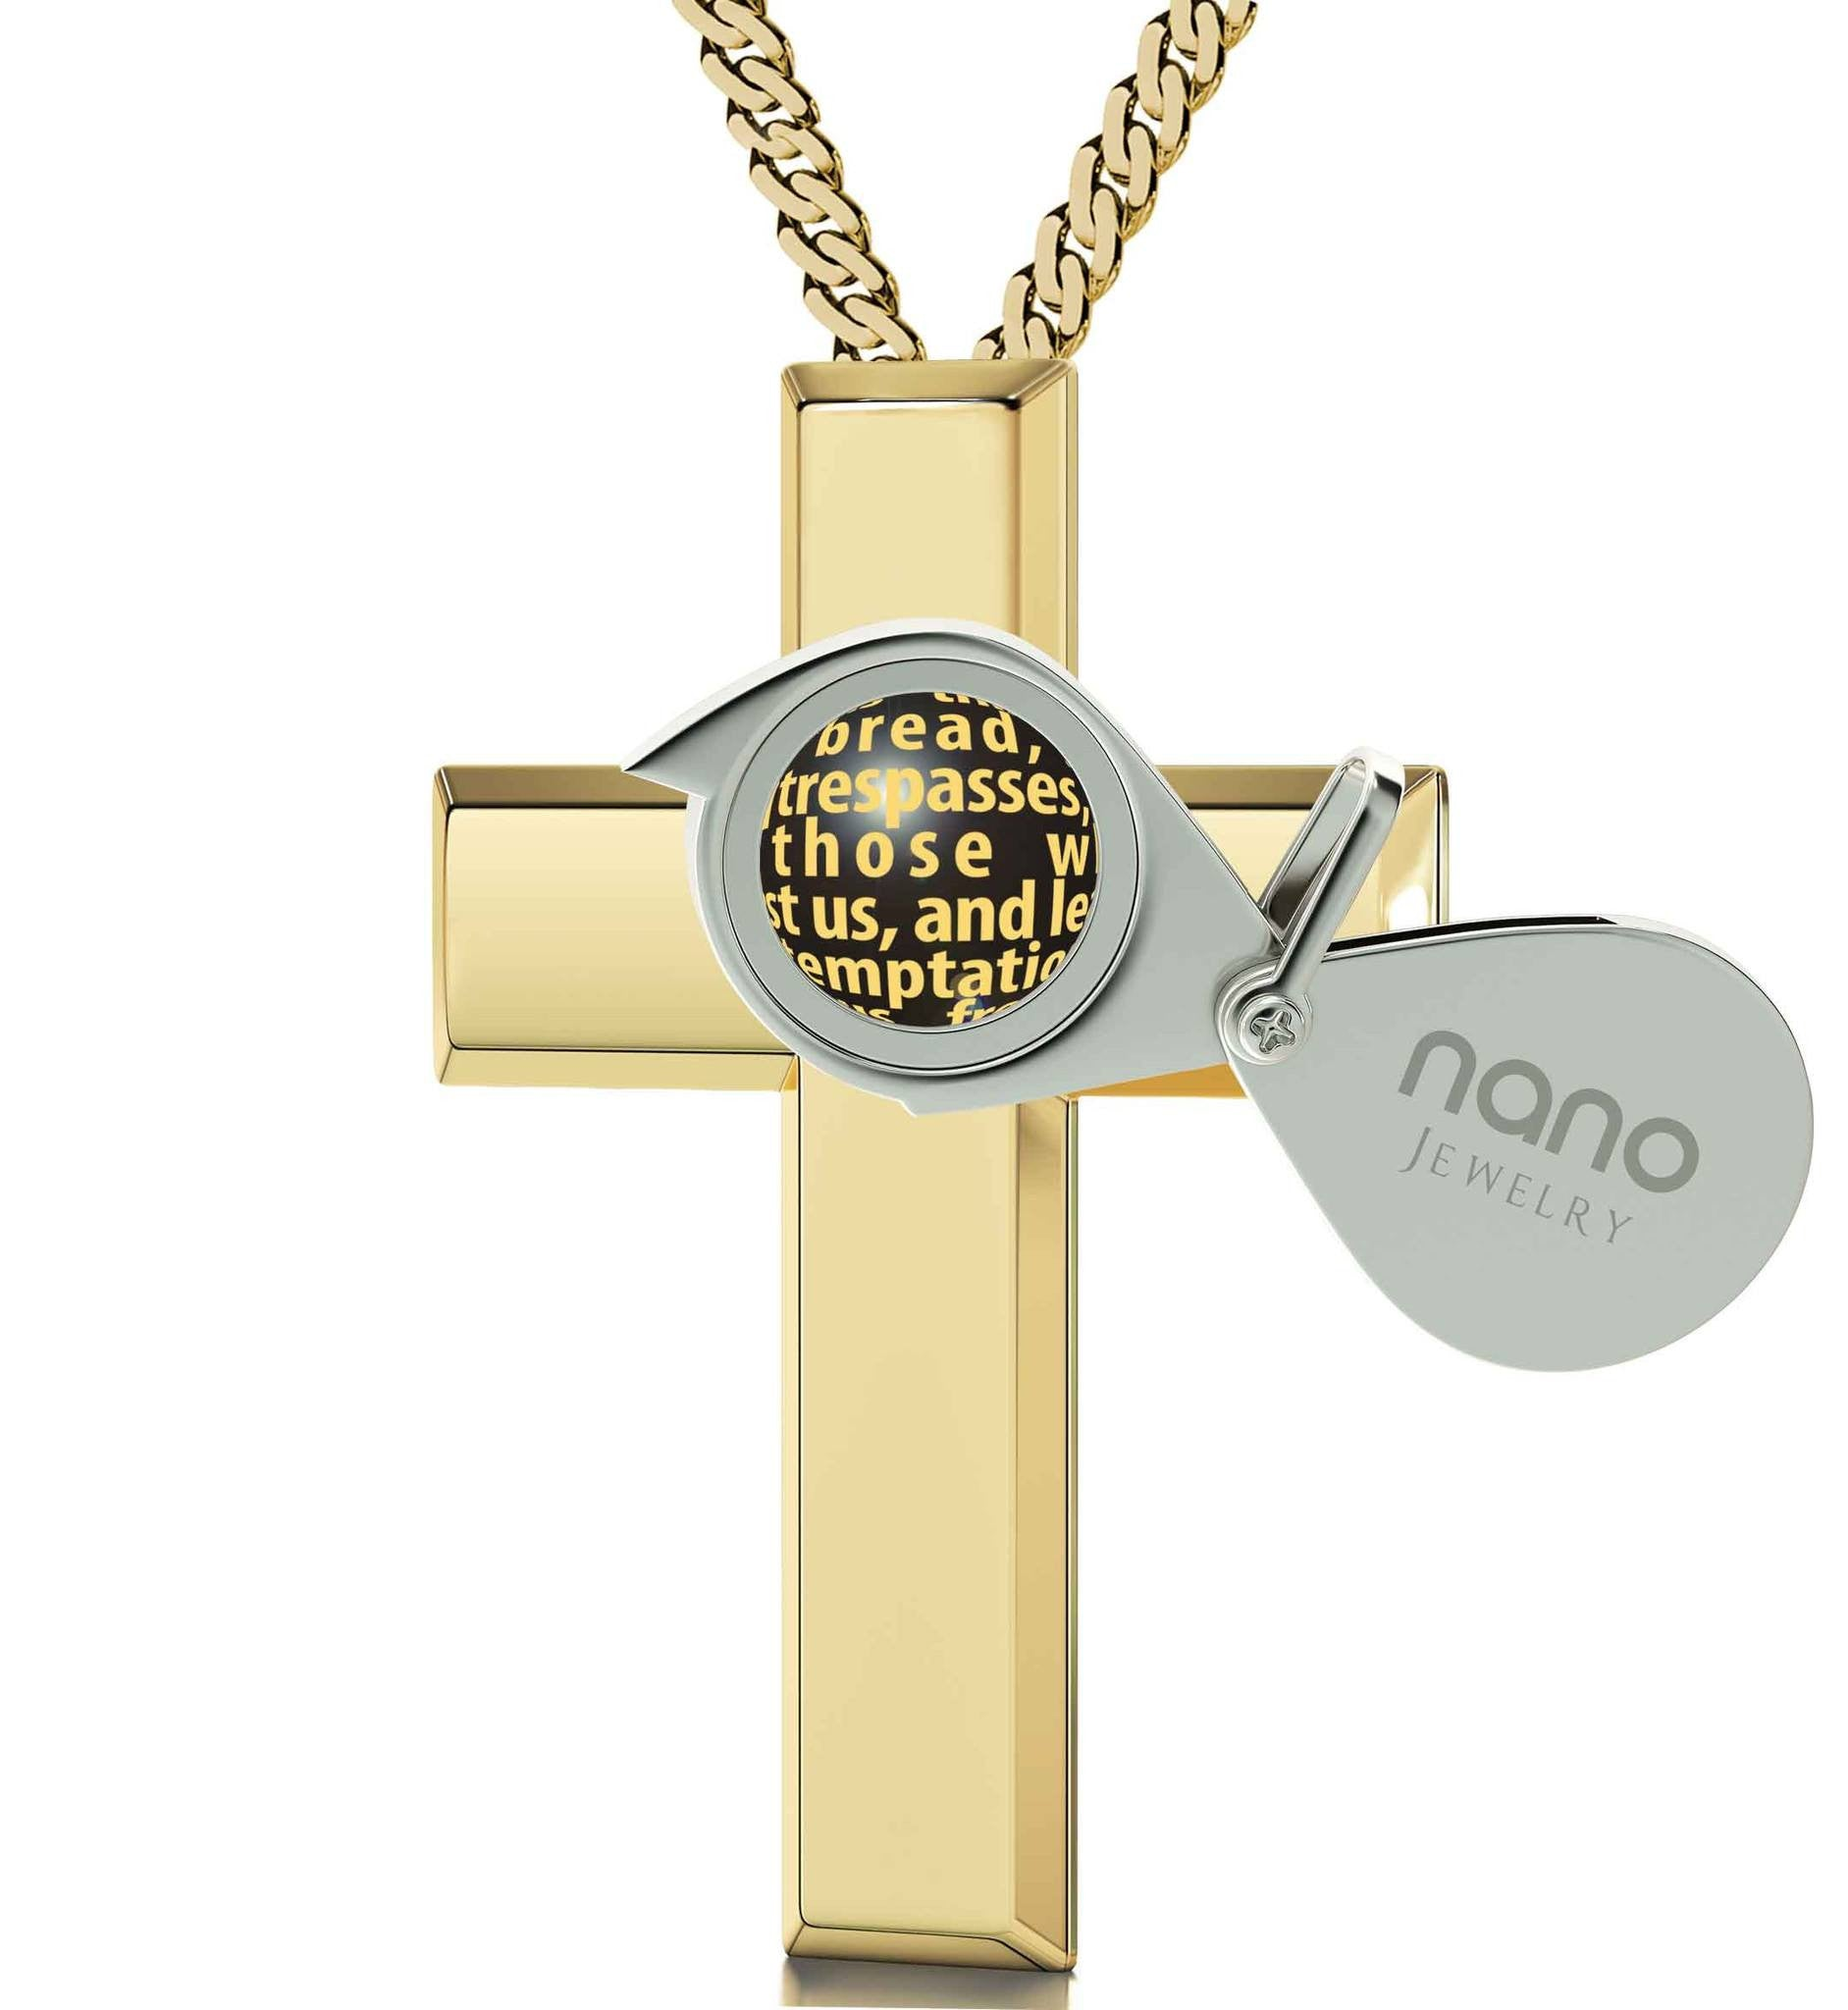 Womens gold cross necklace our father prayer buy now at nano jewelry lords prayer cross necklace xmas ideas for her christian gift items gold aloadofball Gallery